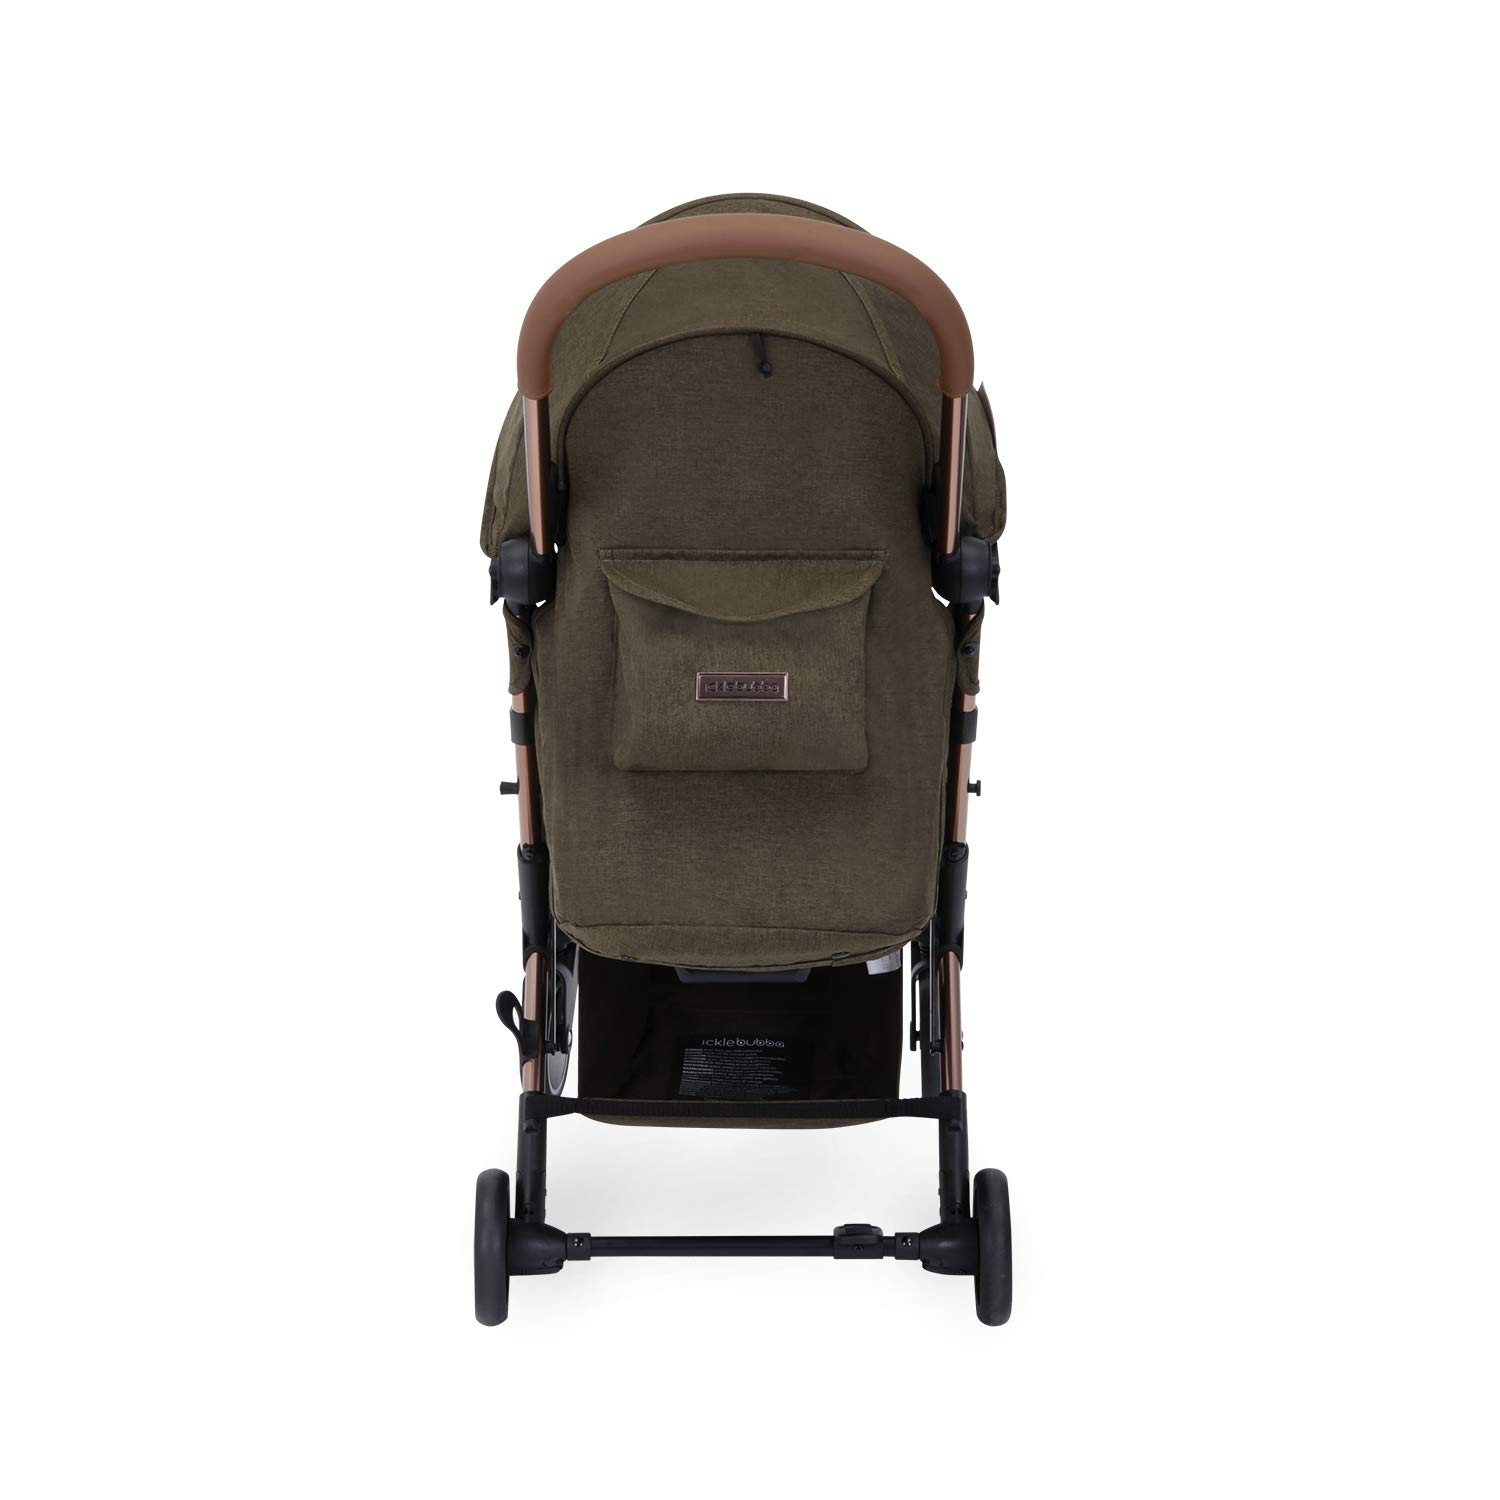 Lightweight and Portable Stroller Pushchair UPF 50+ Extendable Hood and Baby Carriage Accessories Globe Prime Folds Slim for Ultra Compact Storage Ickle Bubba Baby Strollers Black//Rose Gold